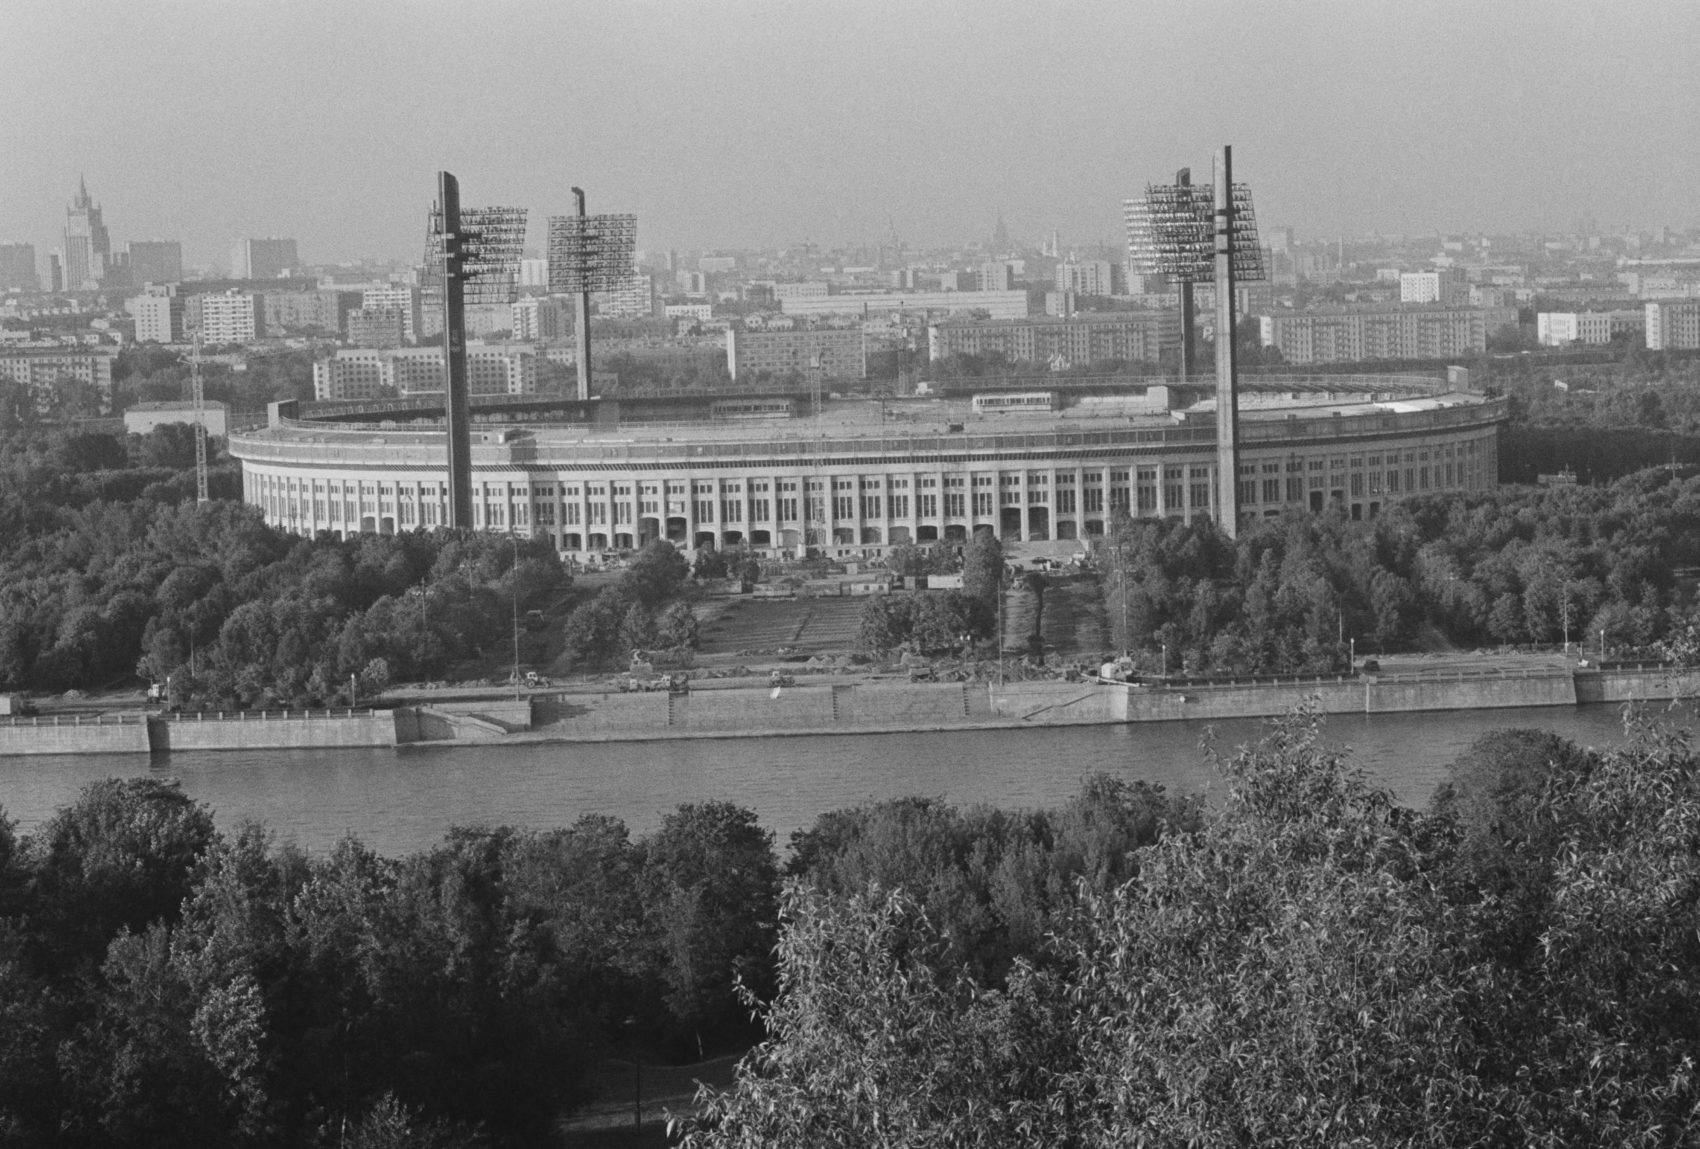 An aerial view of Luzhniki Stadium in Moscow from 1979. (Fresco/Evening Standard/Hulton Archive/Getty Images)